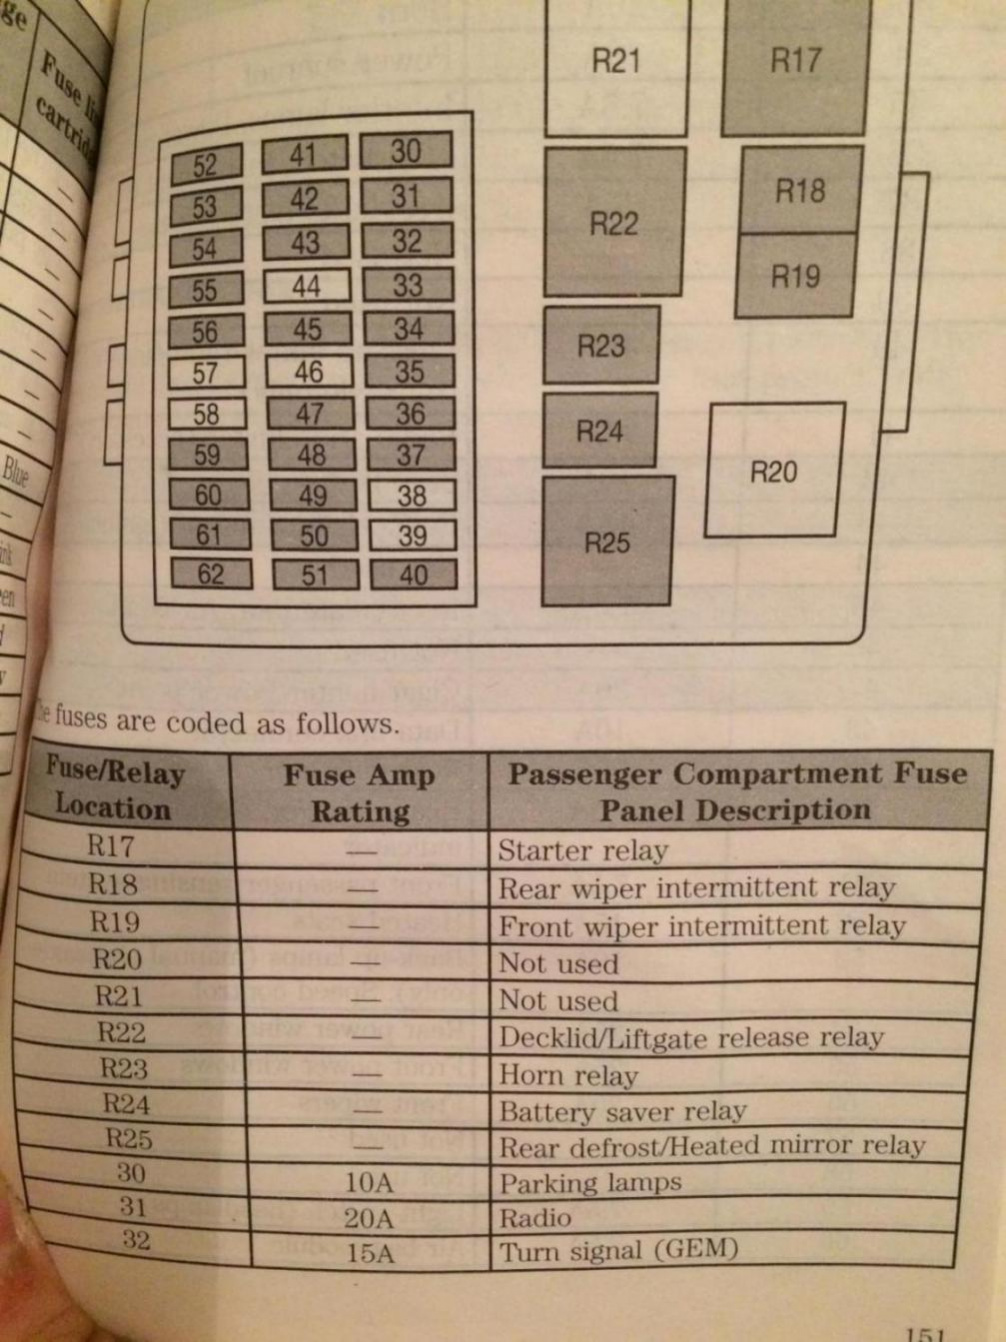 2002 Ford Focus Headlight Fuse Diagram - Today Wiring ...  Focus Fuse Diagram on